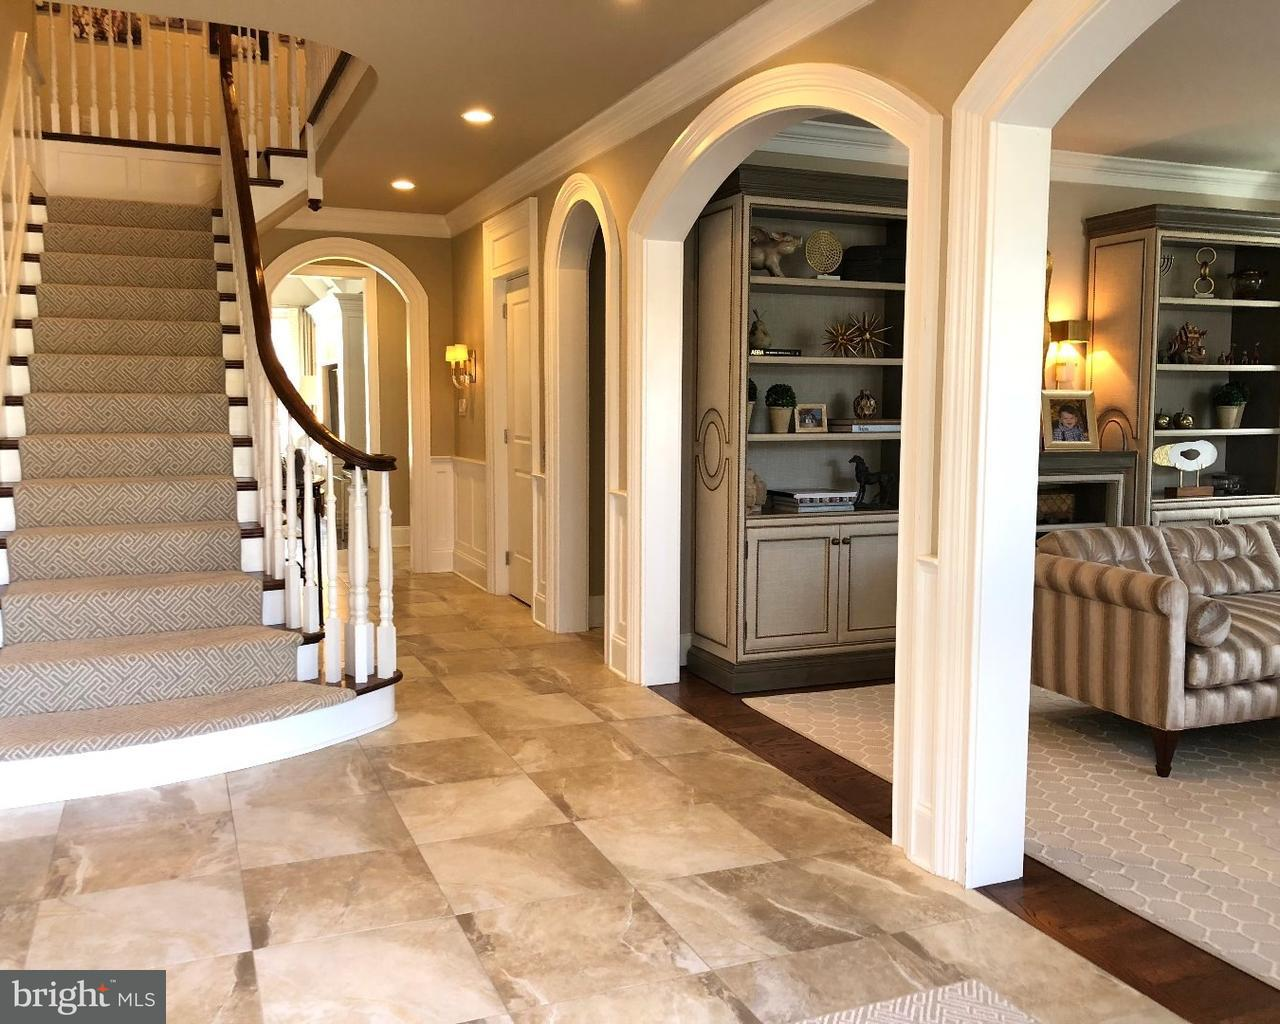 124 GREEN LN, HAVERFORD TWP - Listed at $1,425,000, HAVERFORD TWP